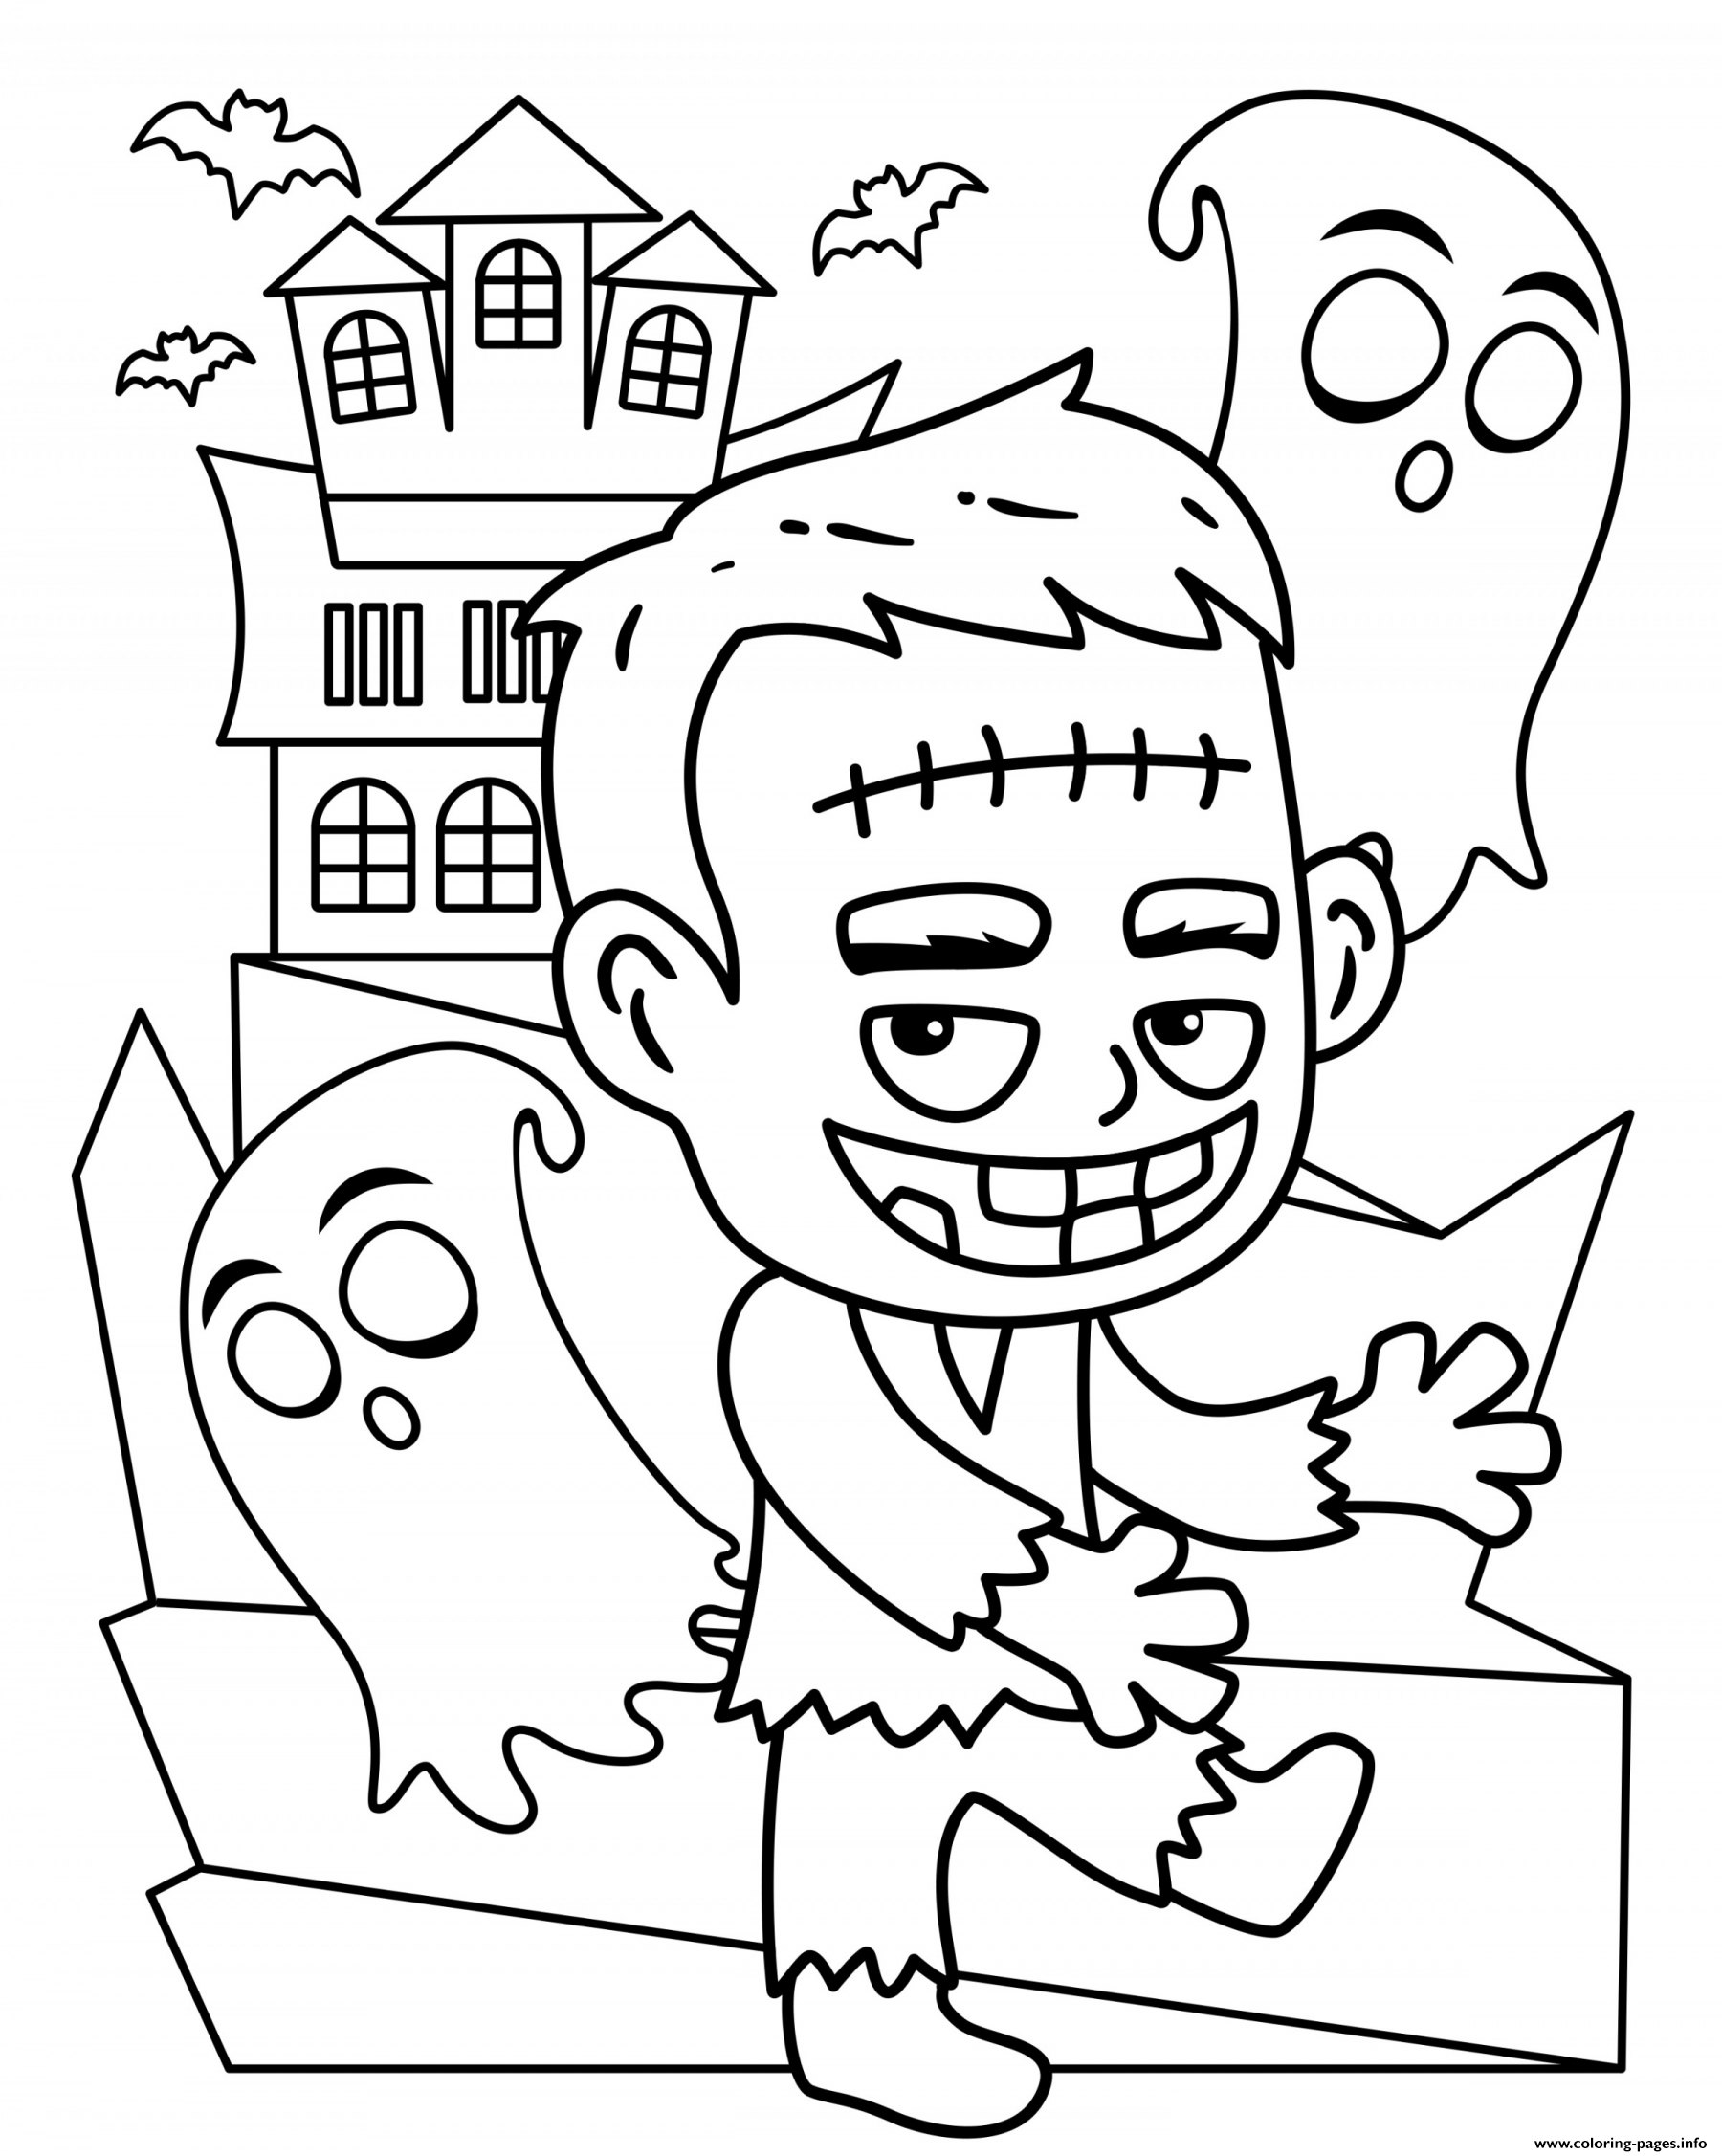 coloring sheet kids free printable math coloring pages for kids sheet coloring kids